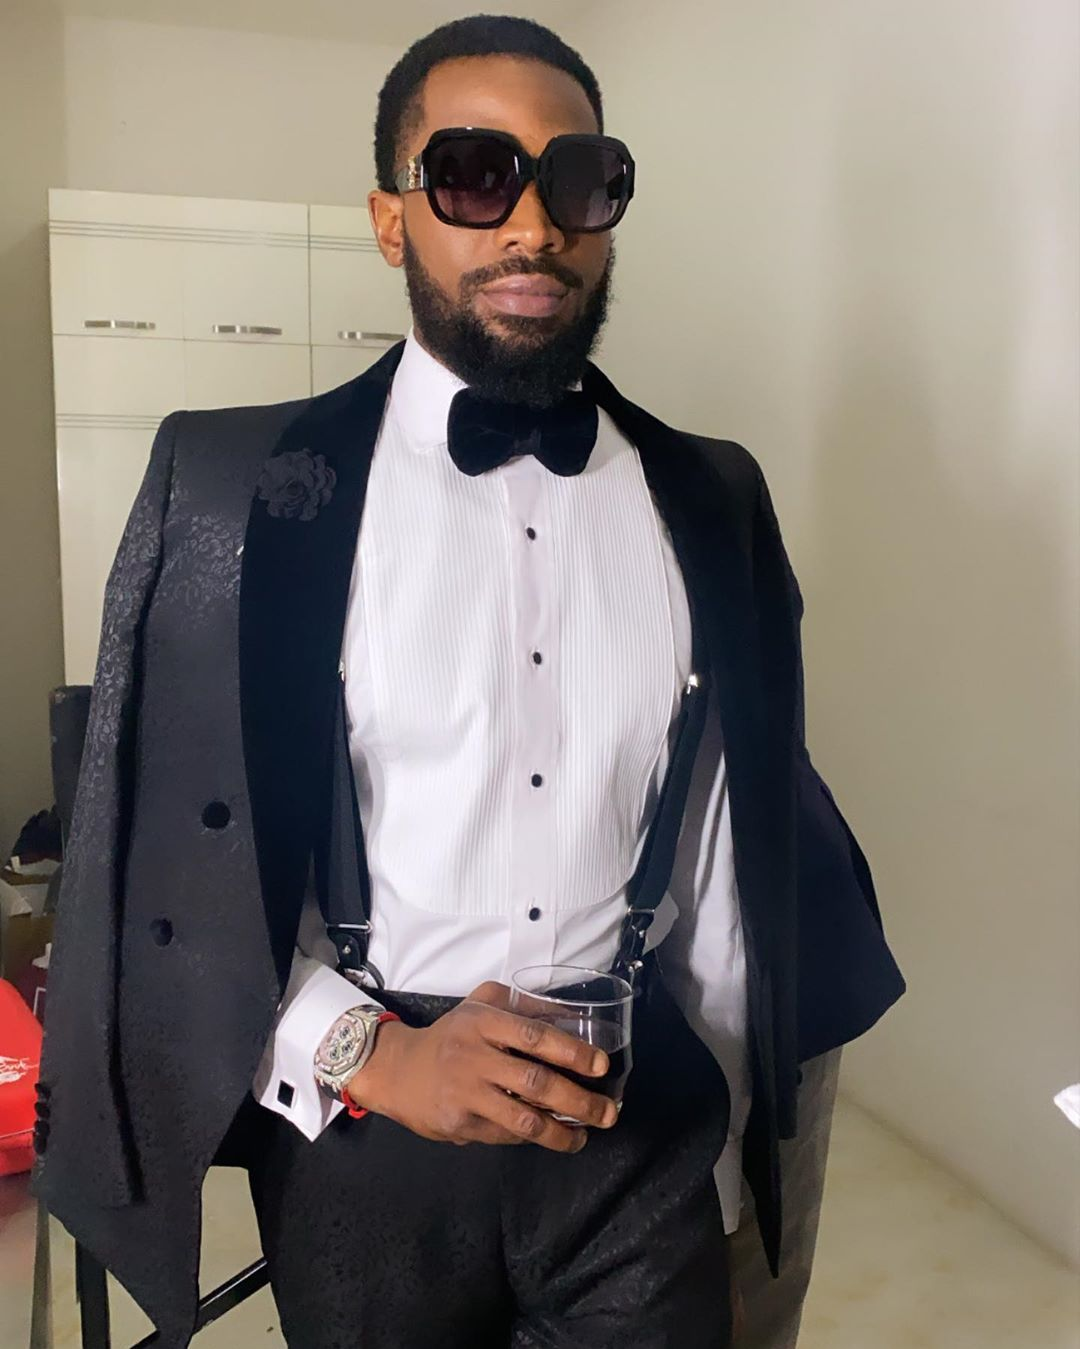 dbanj-rape-police-supreme-court-daca-trump-neymar-pay-barcelona-latest-news-global-world-stories-friday-june-2020-style-rave